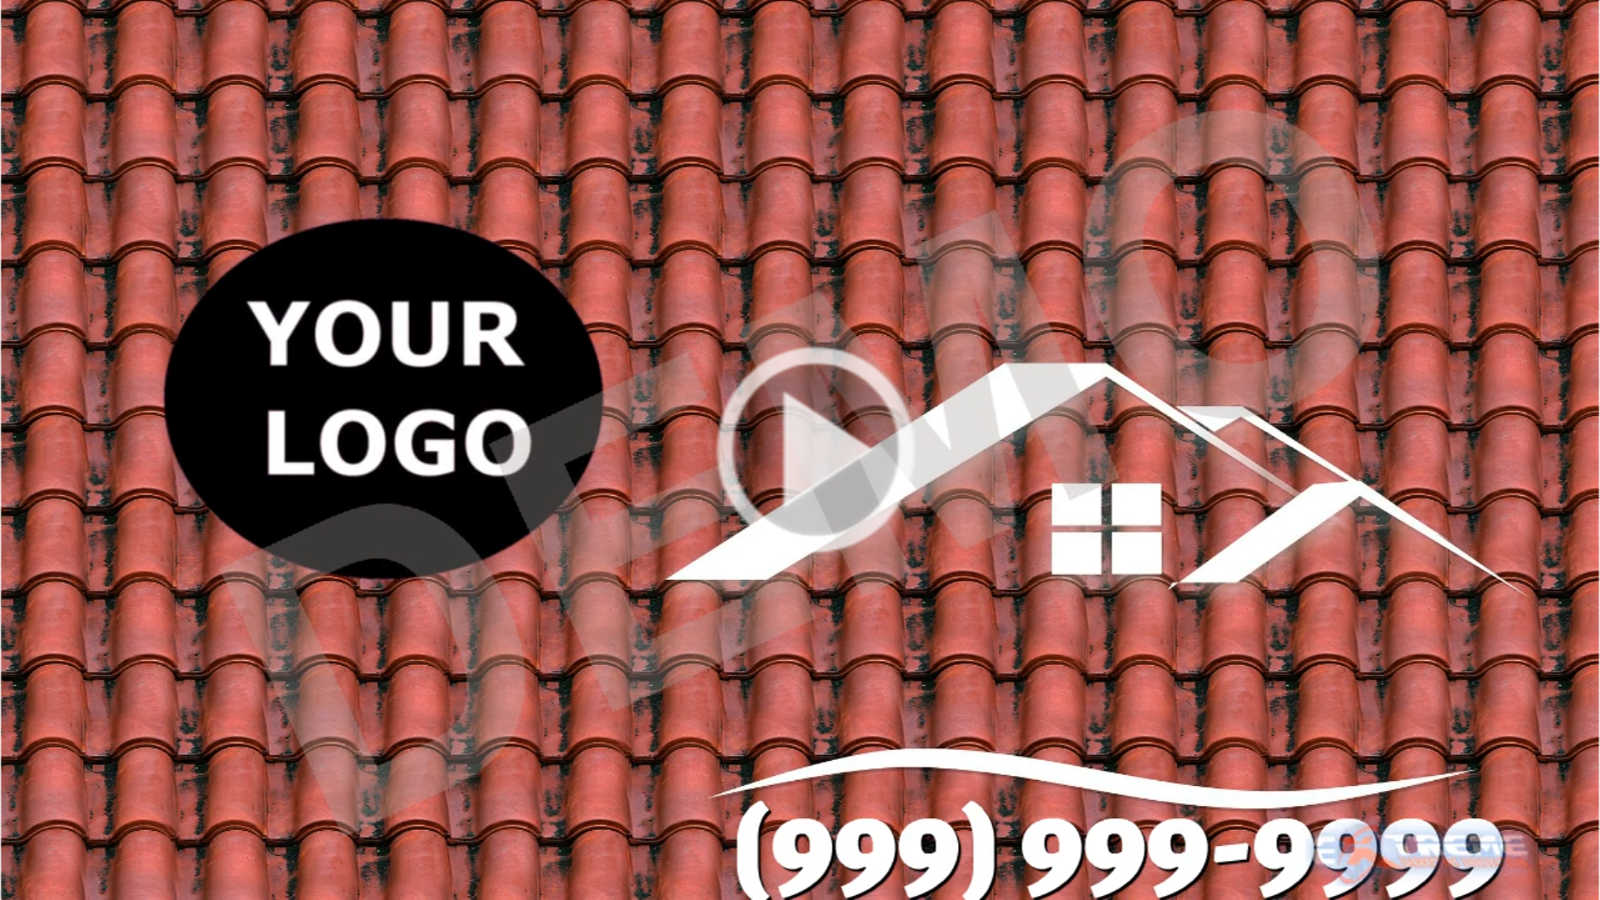 ROOFING CONTRACTOR SALES VIDEOS